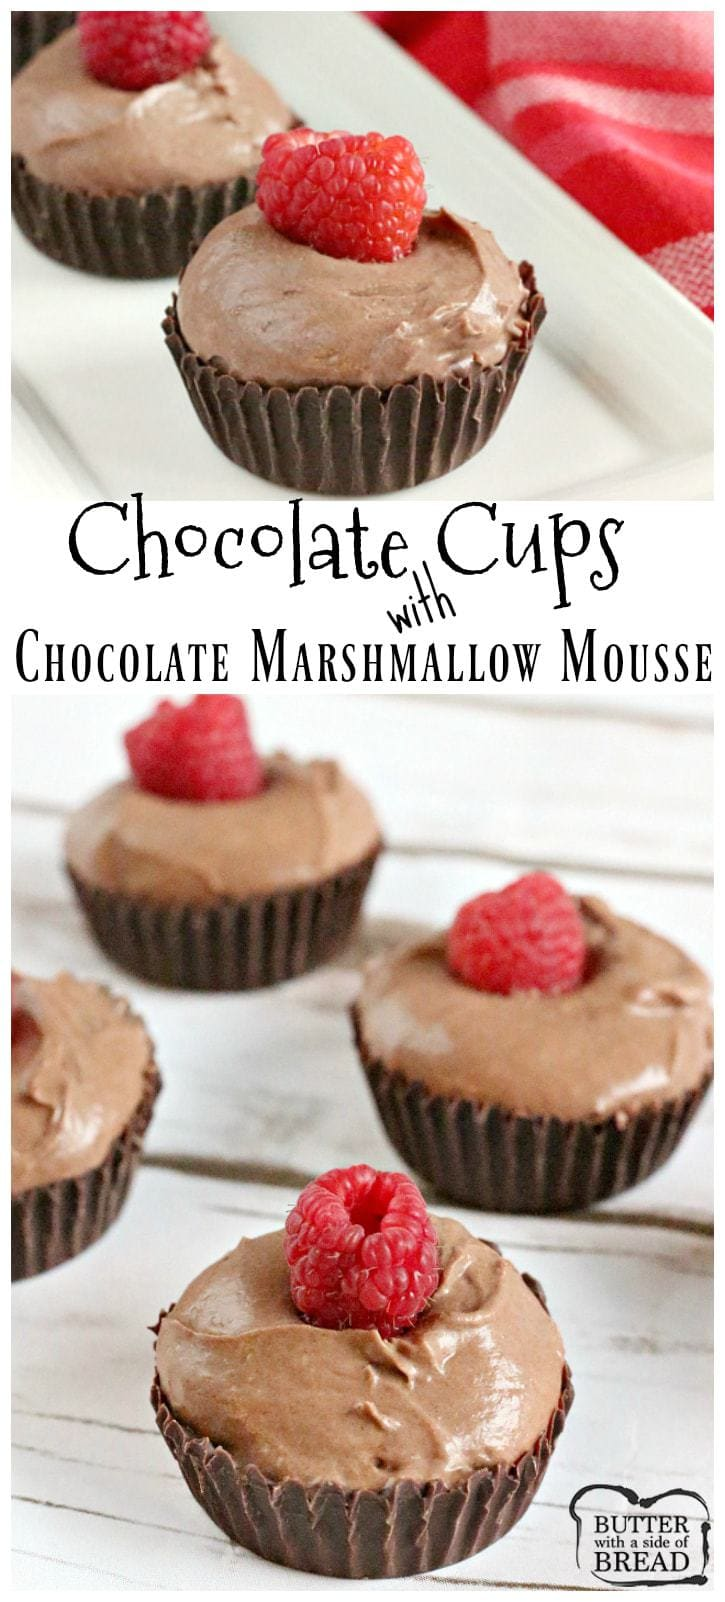 Chocolate Cups with Chocolate Marshmallow Mousse - Butter With a Side of Bread